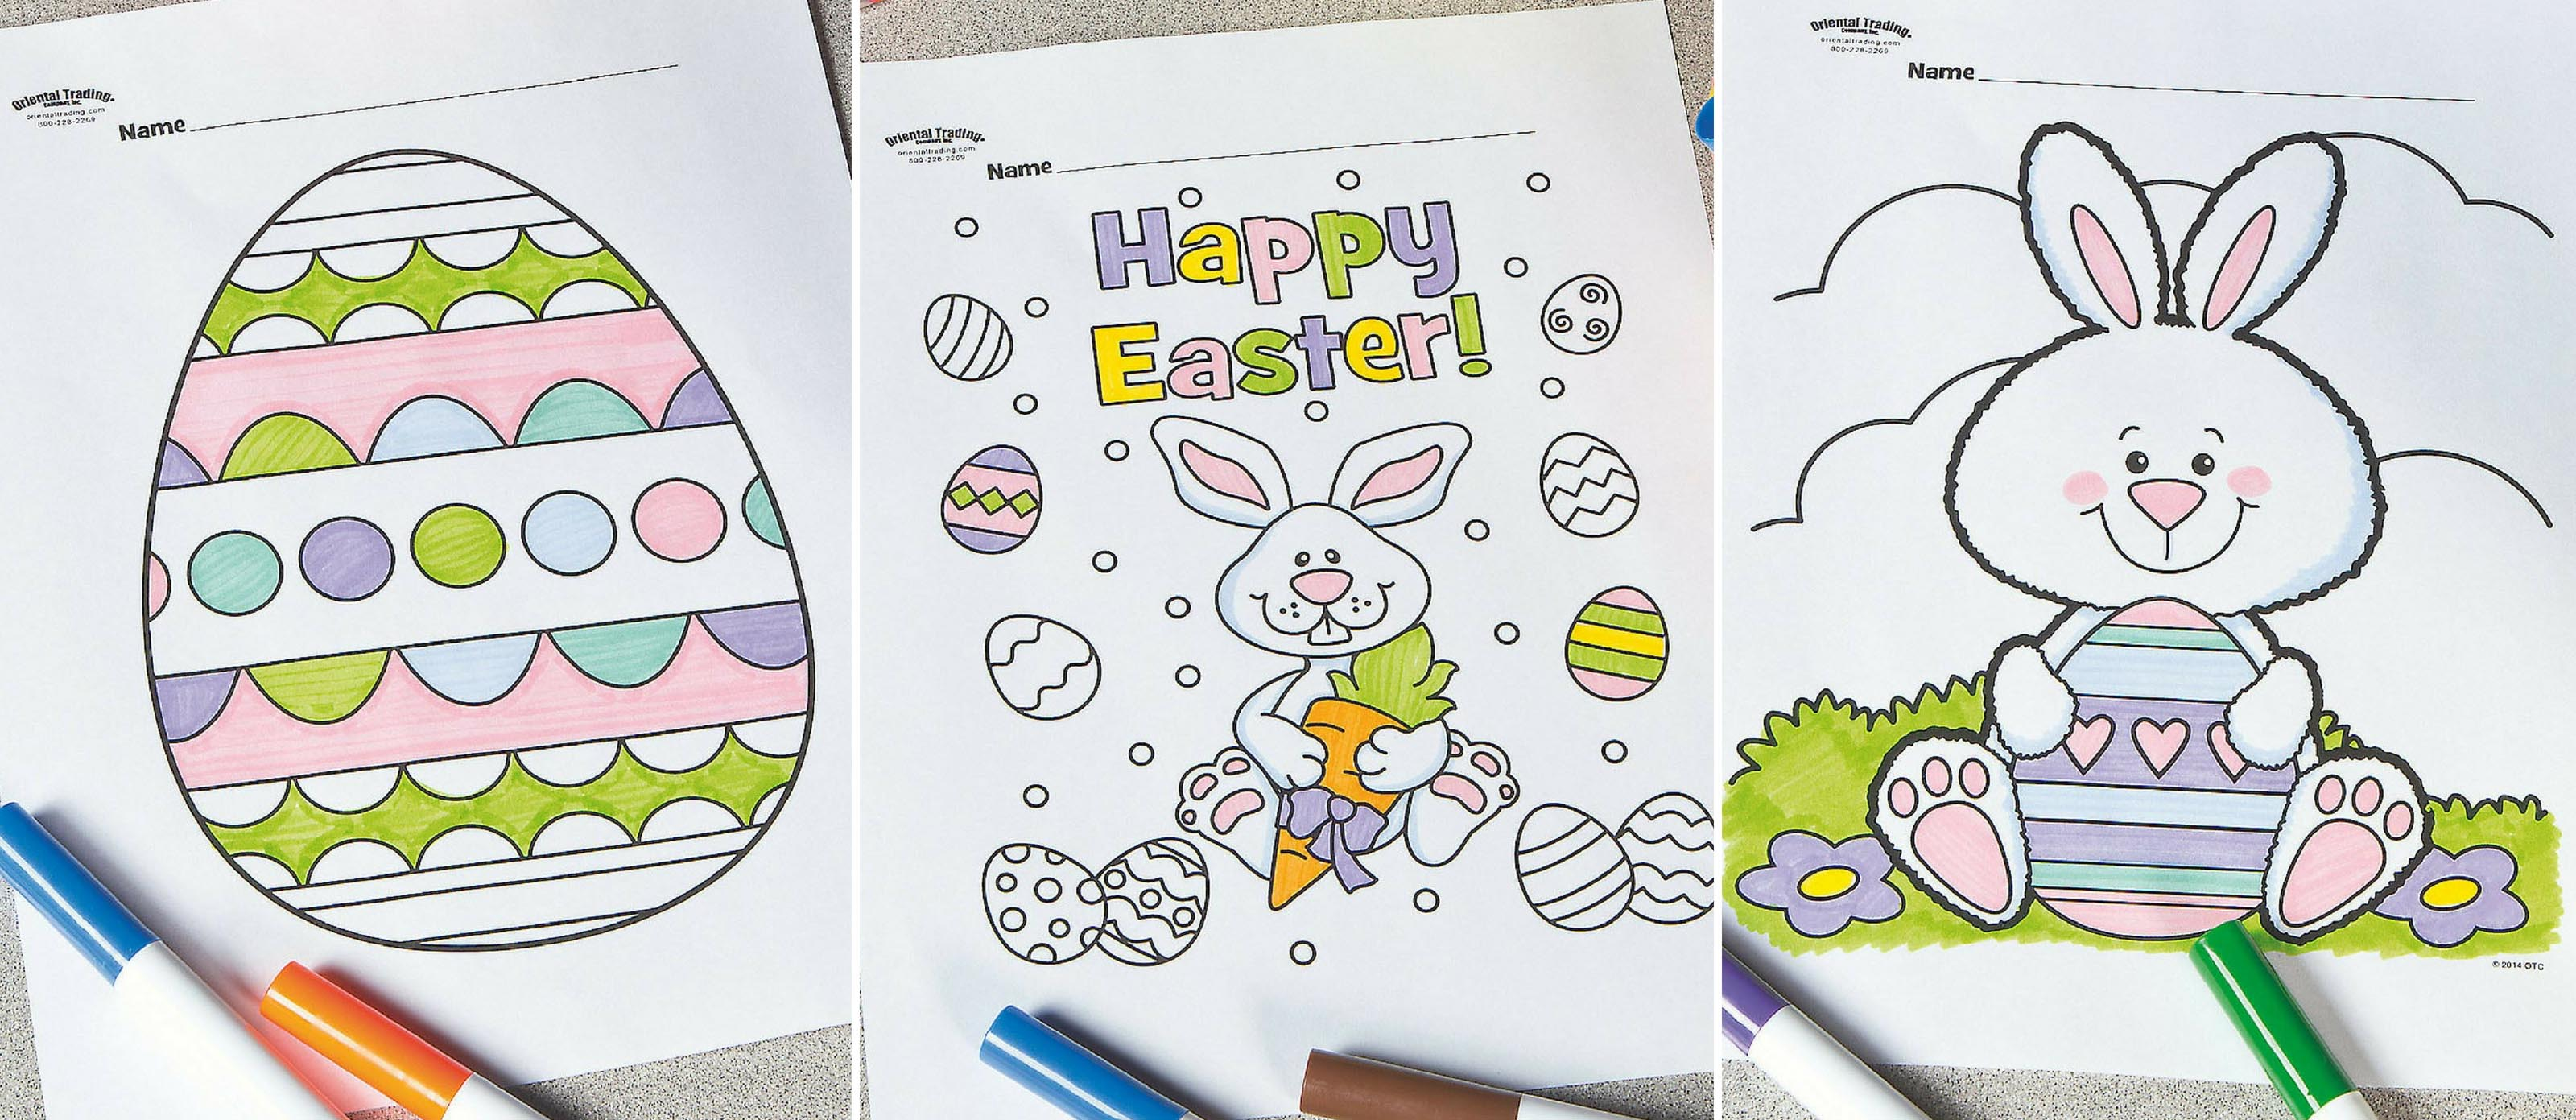 427 Best easter coloring sheets images in 2020 | Easter colouring ... | 1391x3200